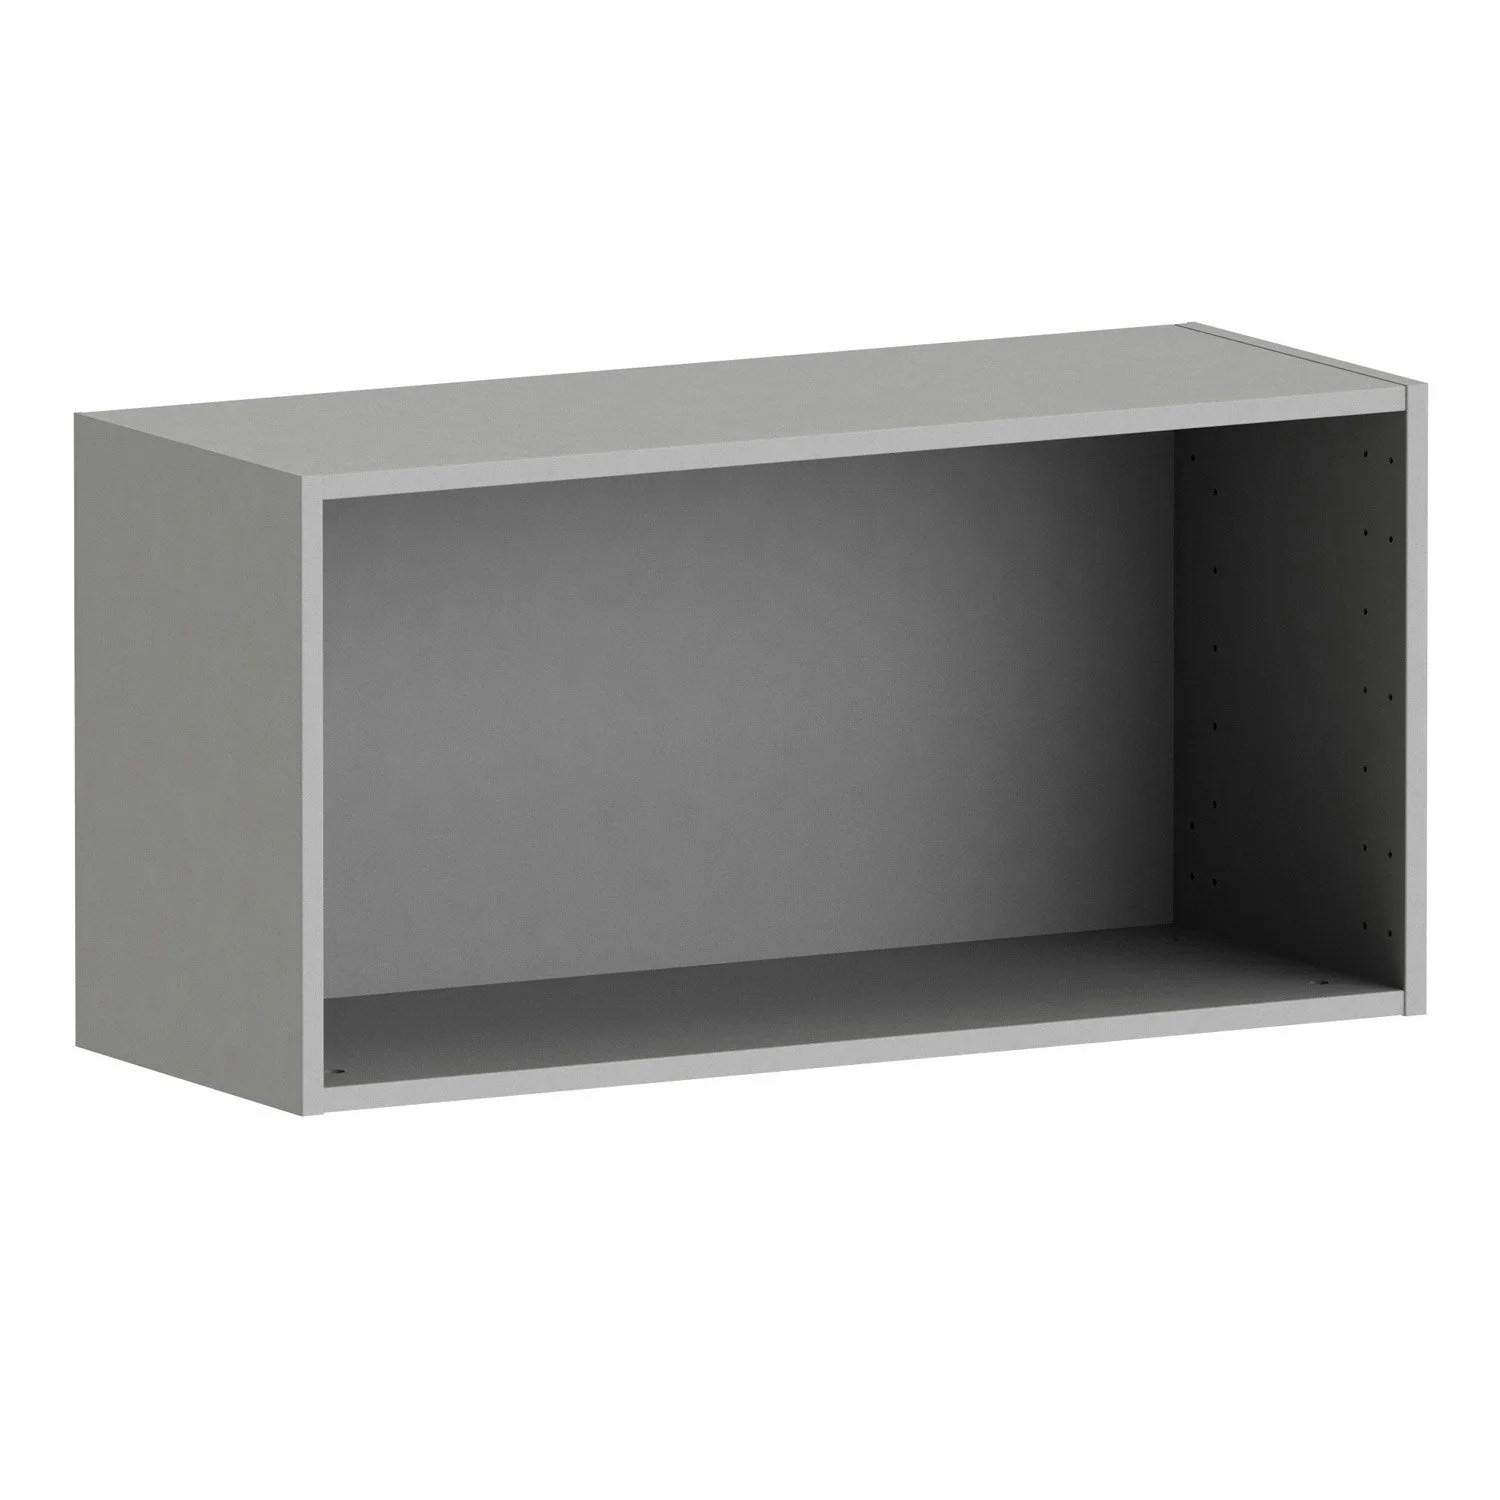 Caisson Spaceo Home Leroy Merlin Caisson Spaceo Home 40 X 80 X 30 Cm Anthracite Leroy Merlin